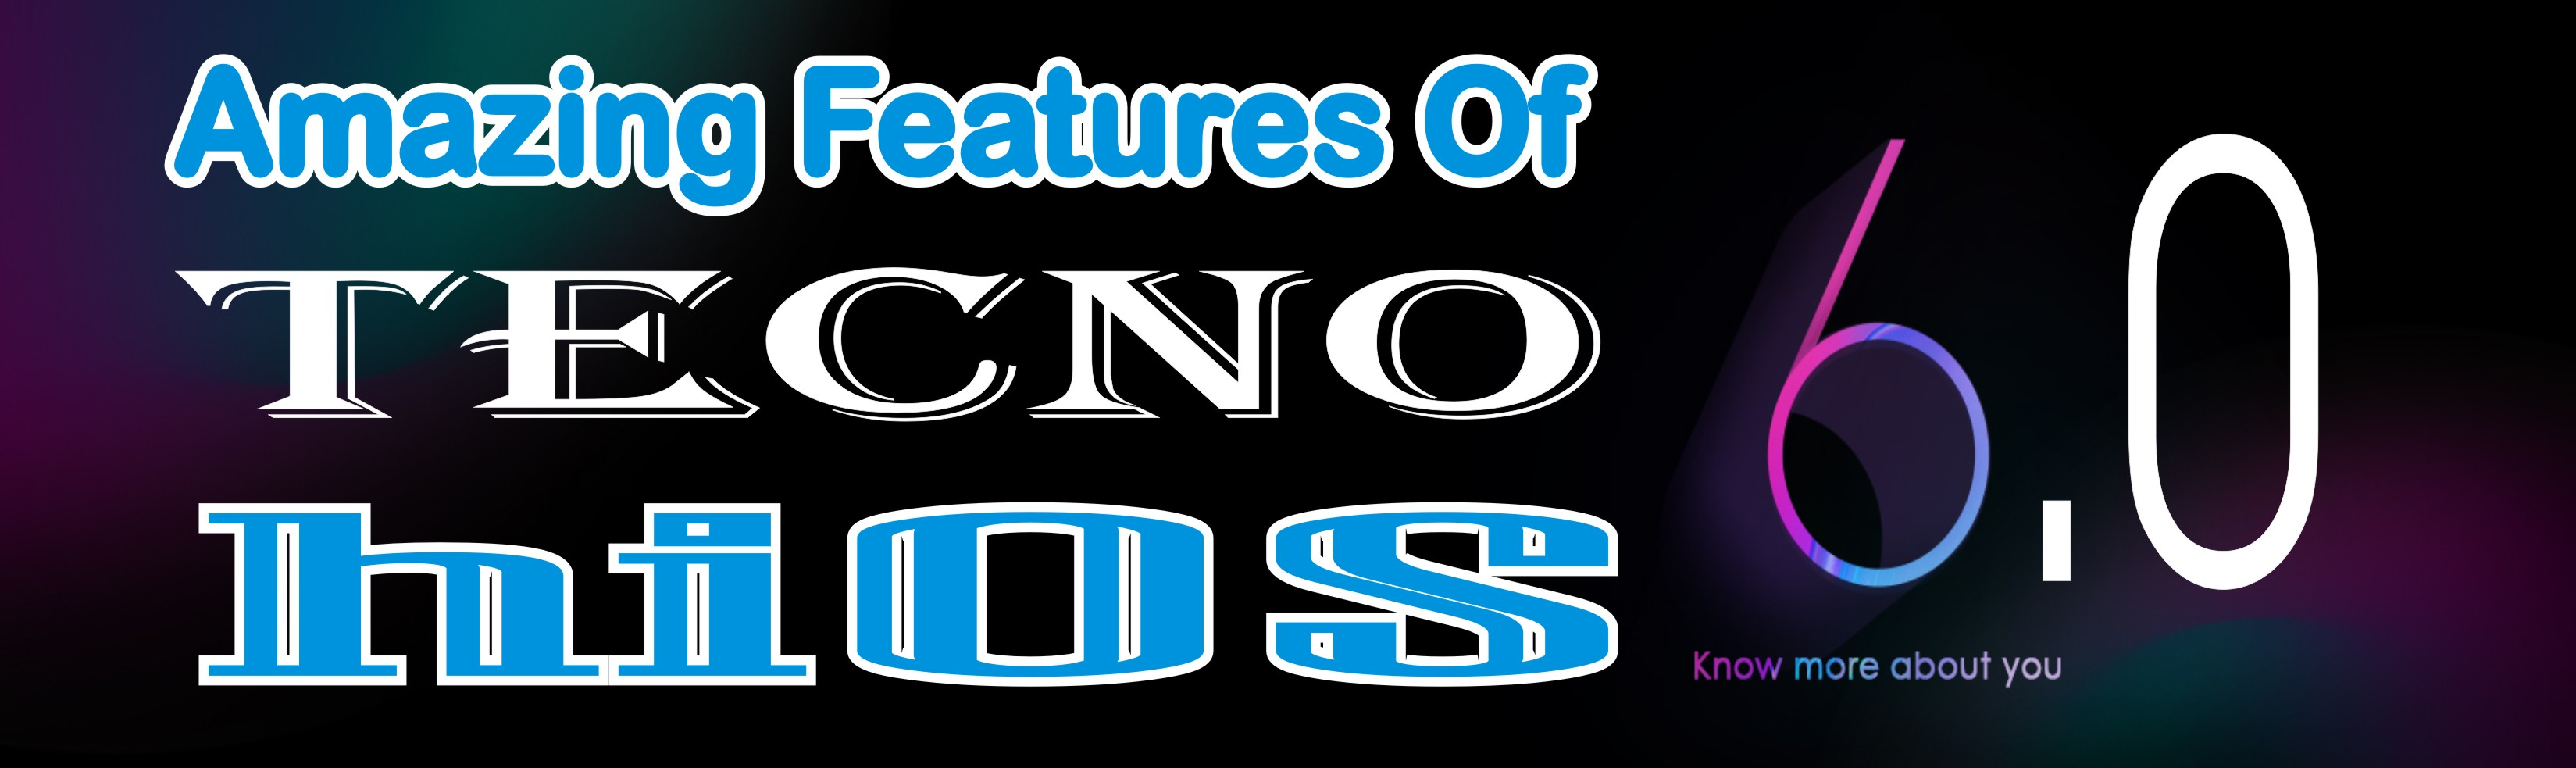 hios 6.0 features by enoch273.JPG